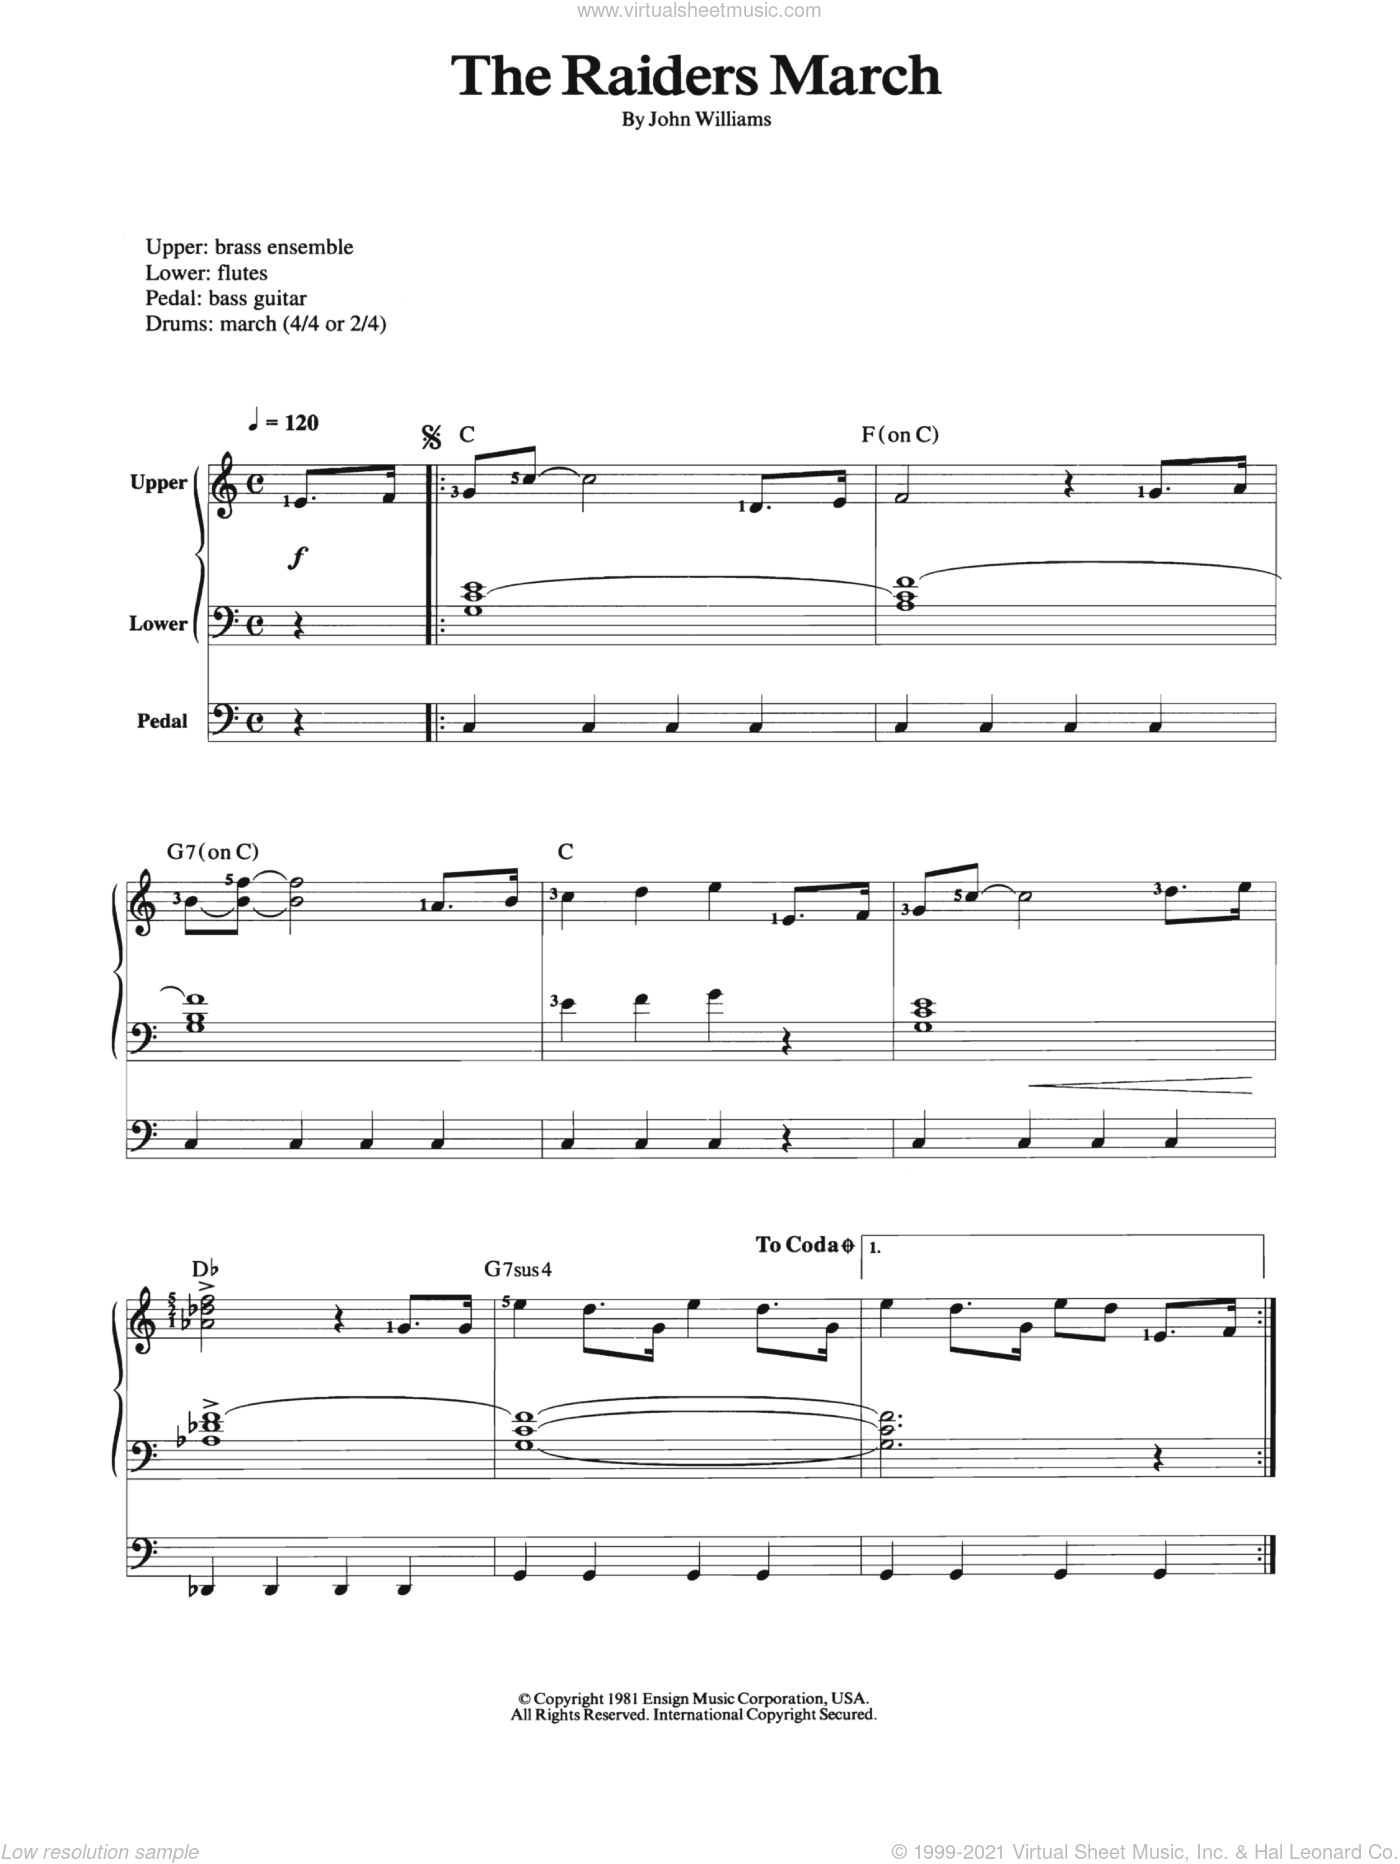 Raiders March sheet music for organ by John Williams